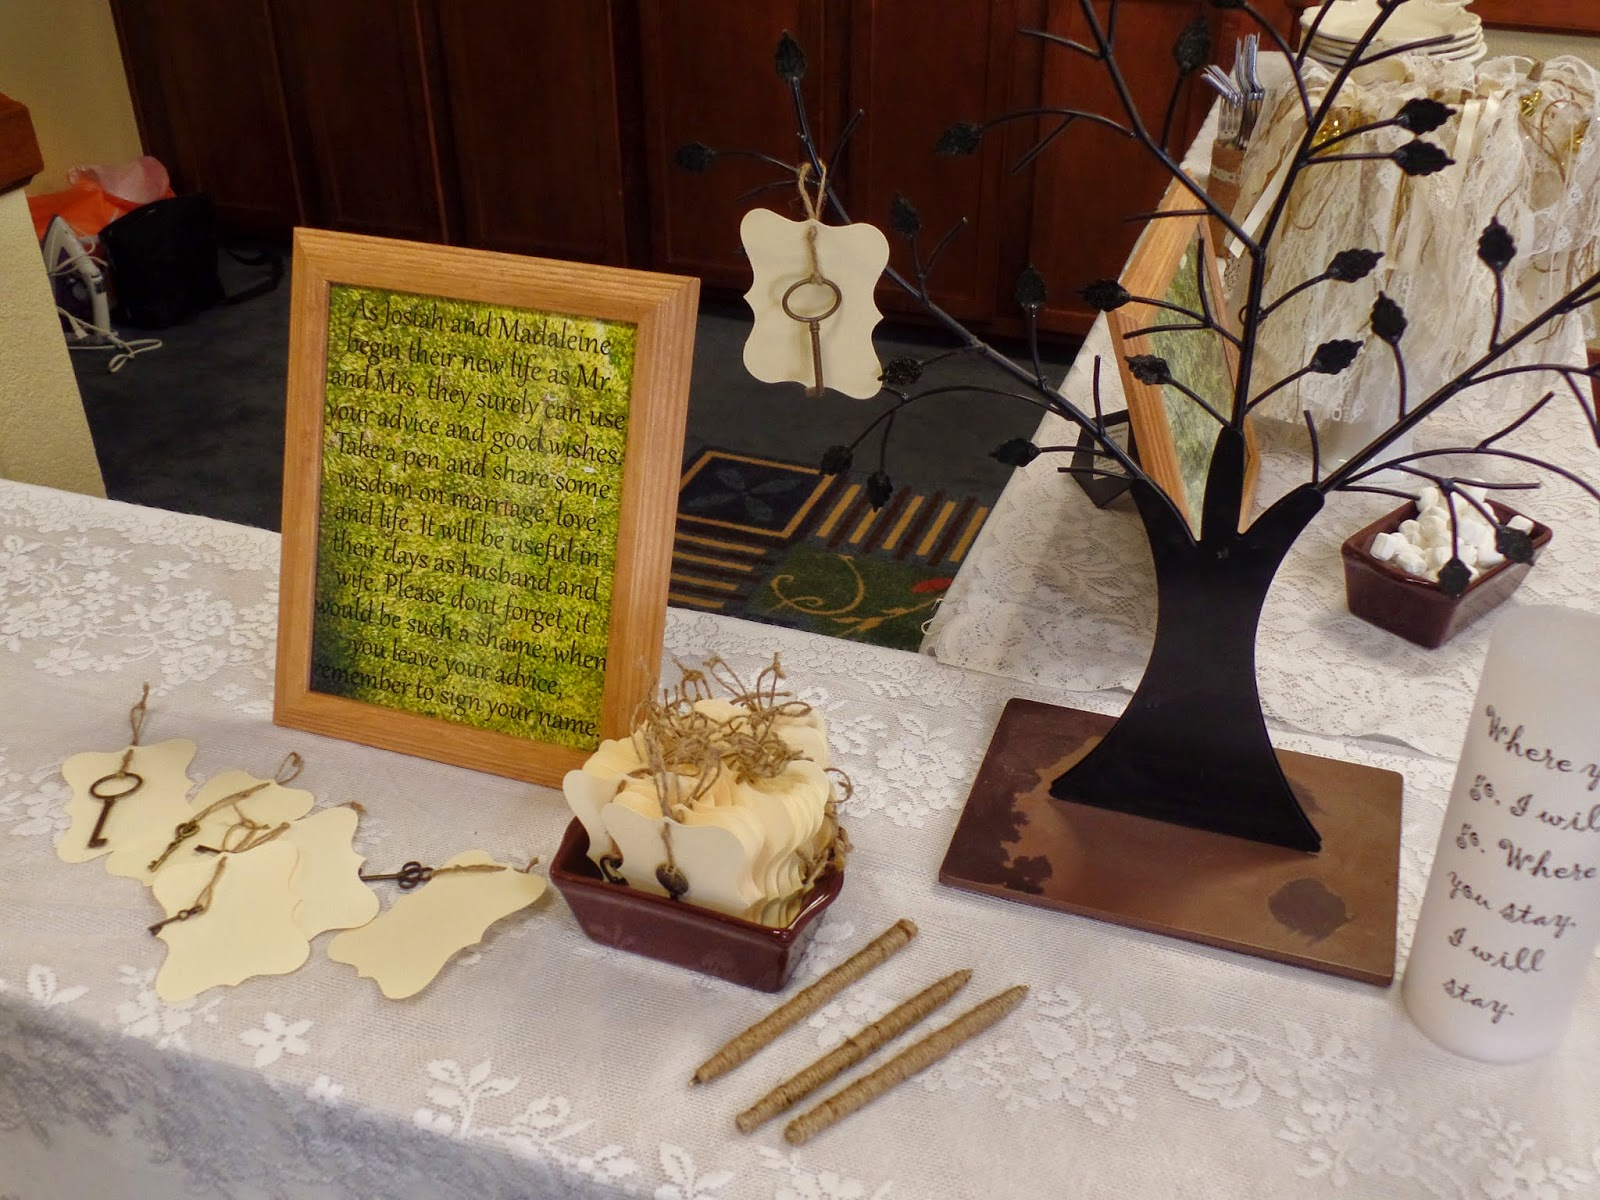 woodsy wedding key tree for marriage advice